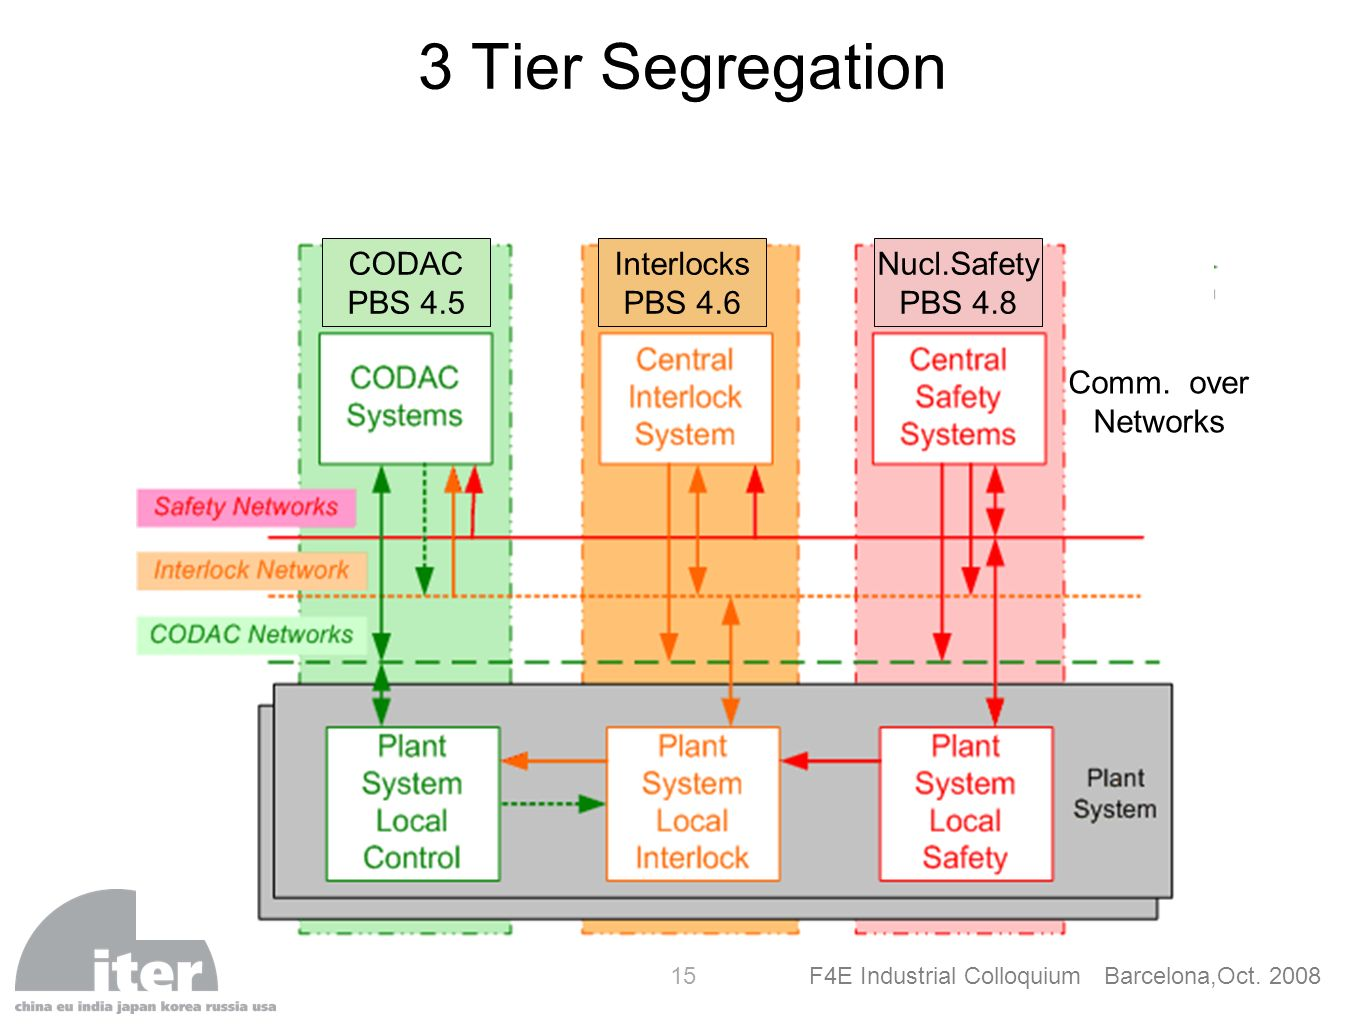 F4E Industrial Colloquium Barcelona,Oct. 2008 15 3 Tier Segregation CODAC PBS 4.5 Interlocks PBS 4.6 Nucl.Safety PBS 4.8 Comm. over Networks